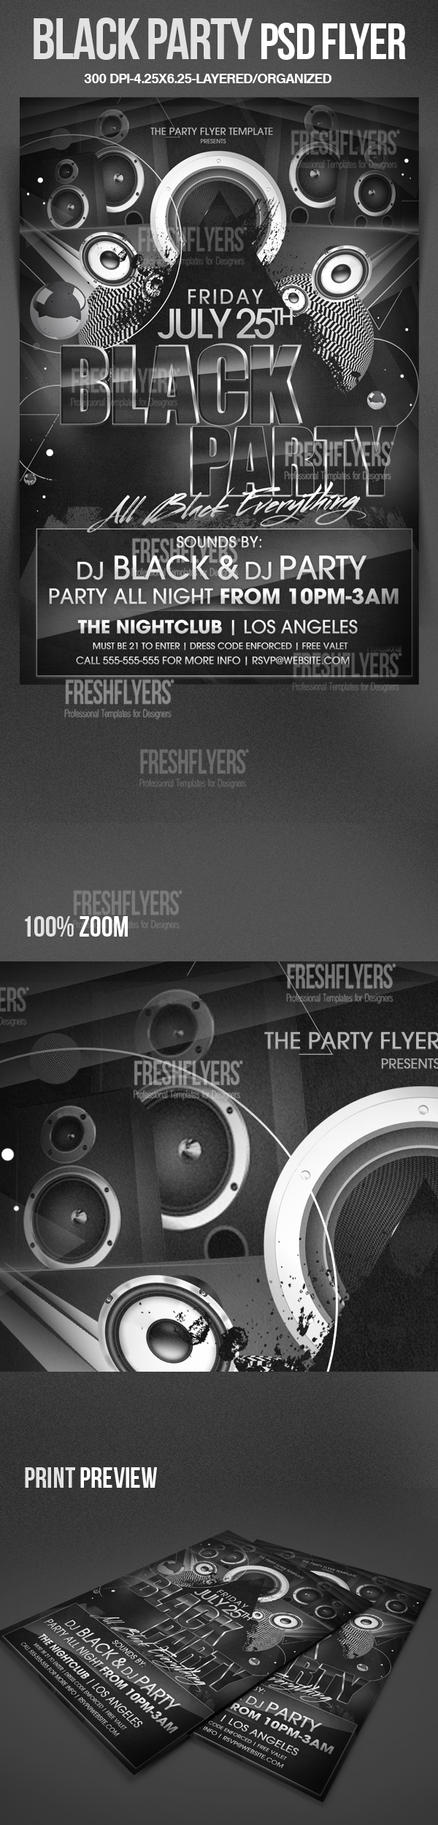 all black party flyer template by imperialflyers on deviantart